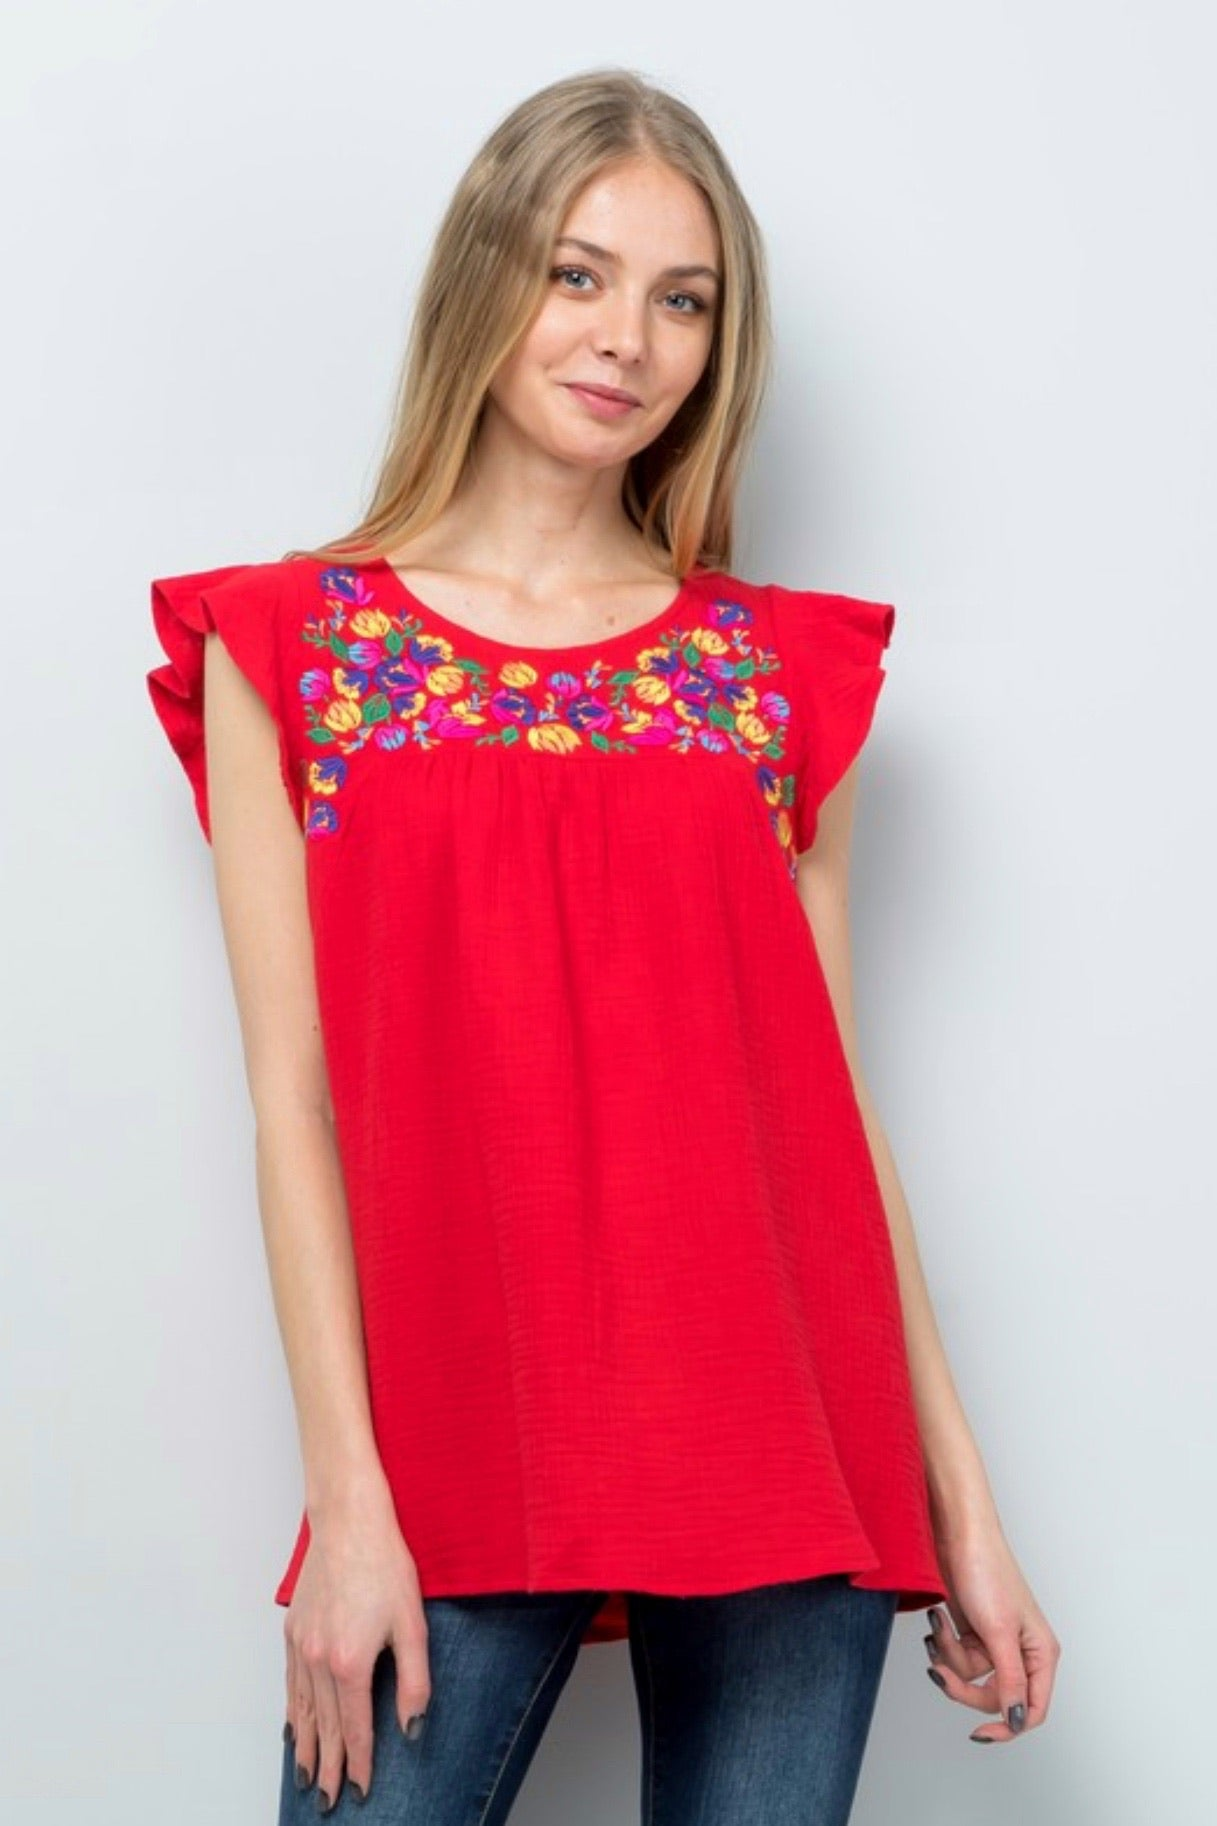 Floral Embroidered Cotton Flutter Sleeve Top, Red, S-L